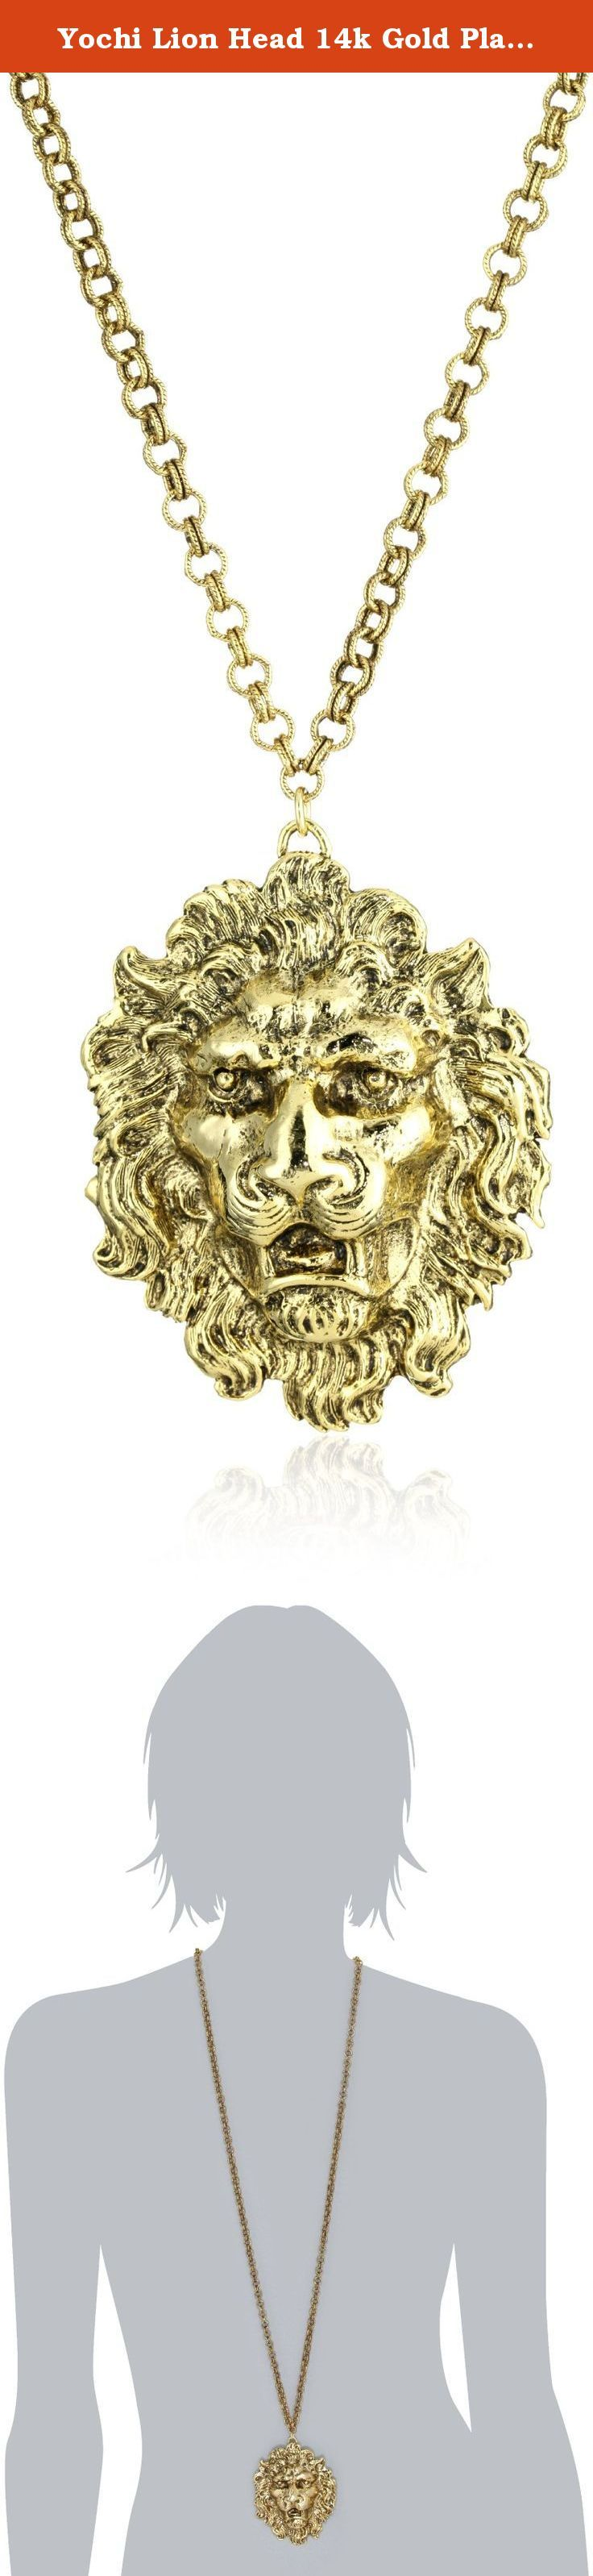 "Yochi Lion Head 14k Gold Plated Necklace. Raised lion design with distinct details. 14k Gold Plated. The lion is on a 36"" chain. Domestic."